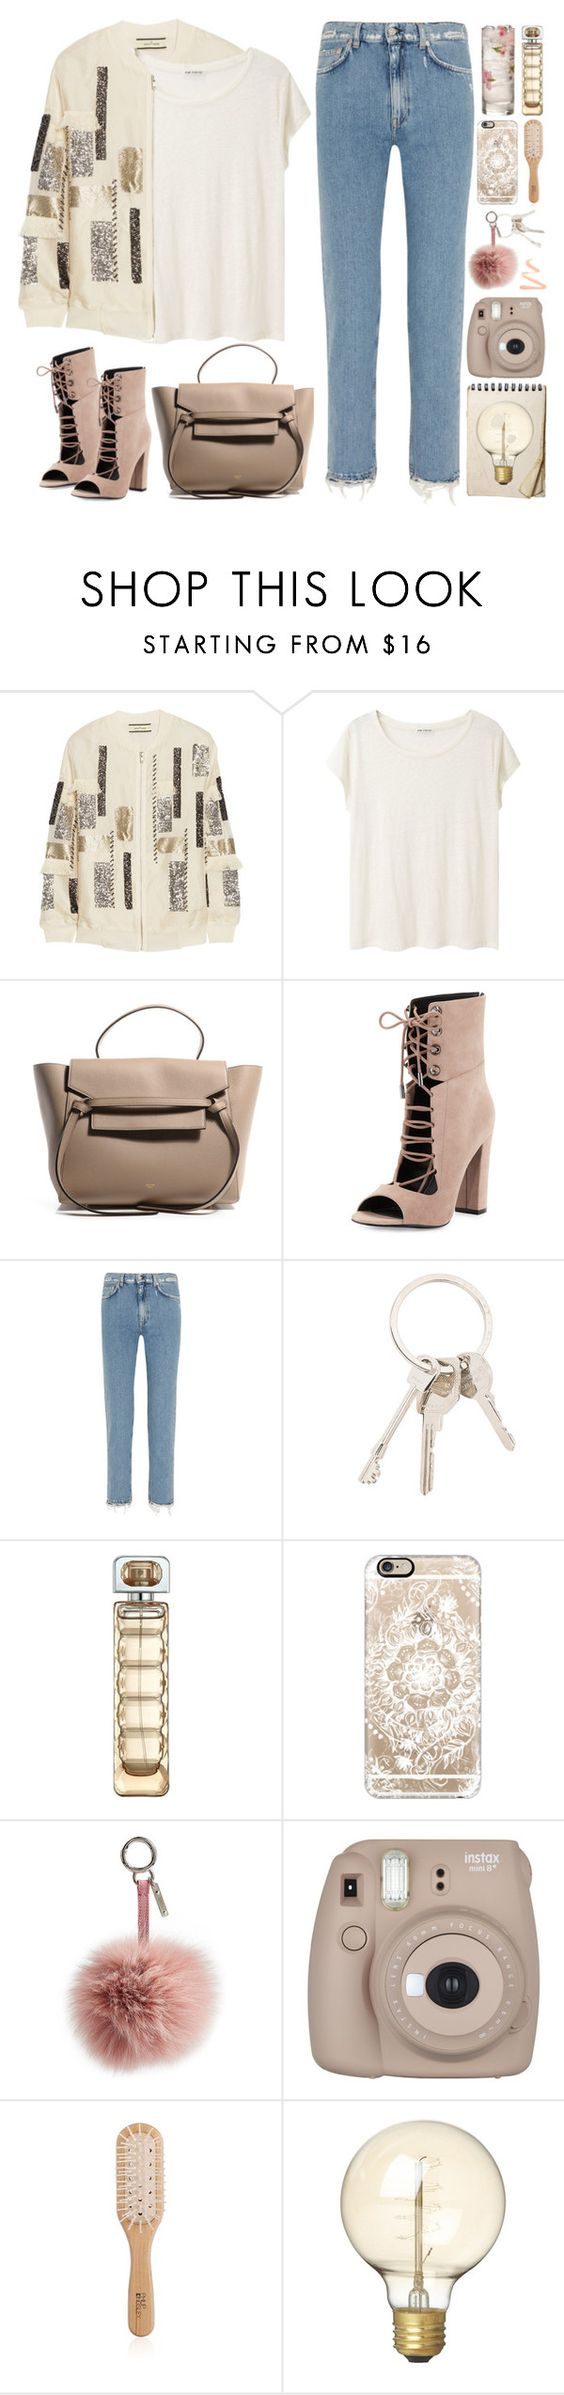 """""""2416. Hurt me with the truth but never comfort me wit a lie."""" by chocolatepumma ❤ liked on Polyvore featuring By Malene Birger, Acne Studios, Kendall + Kylie, Givenchy, HUGO, Casetify, Fendi, Fujifilm, Philip Kingsley and CB2"""